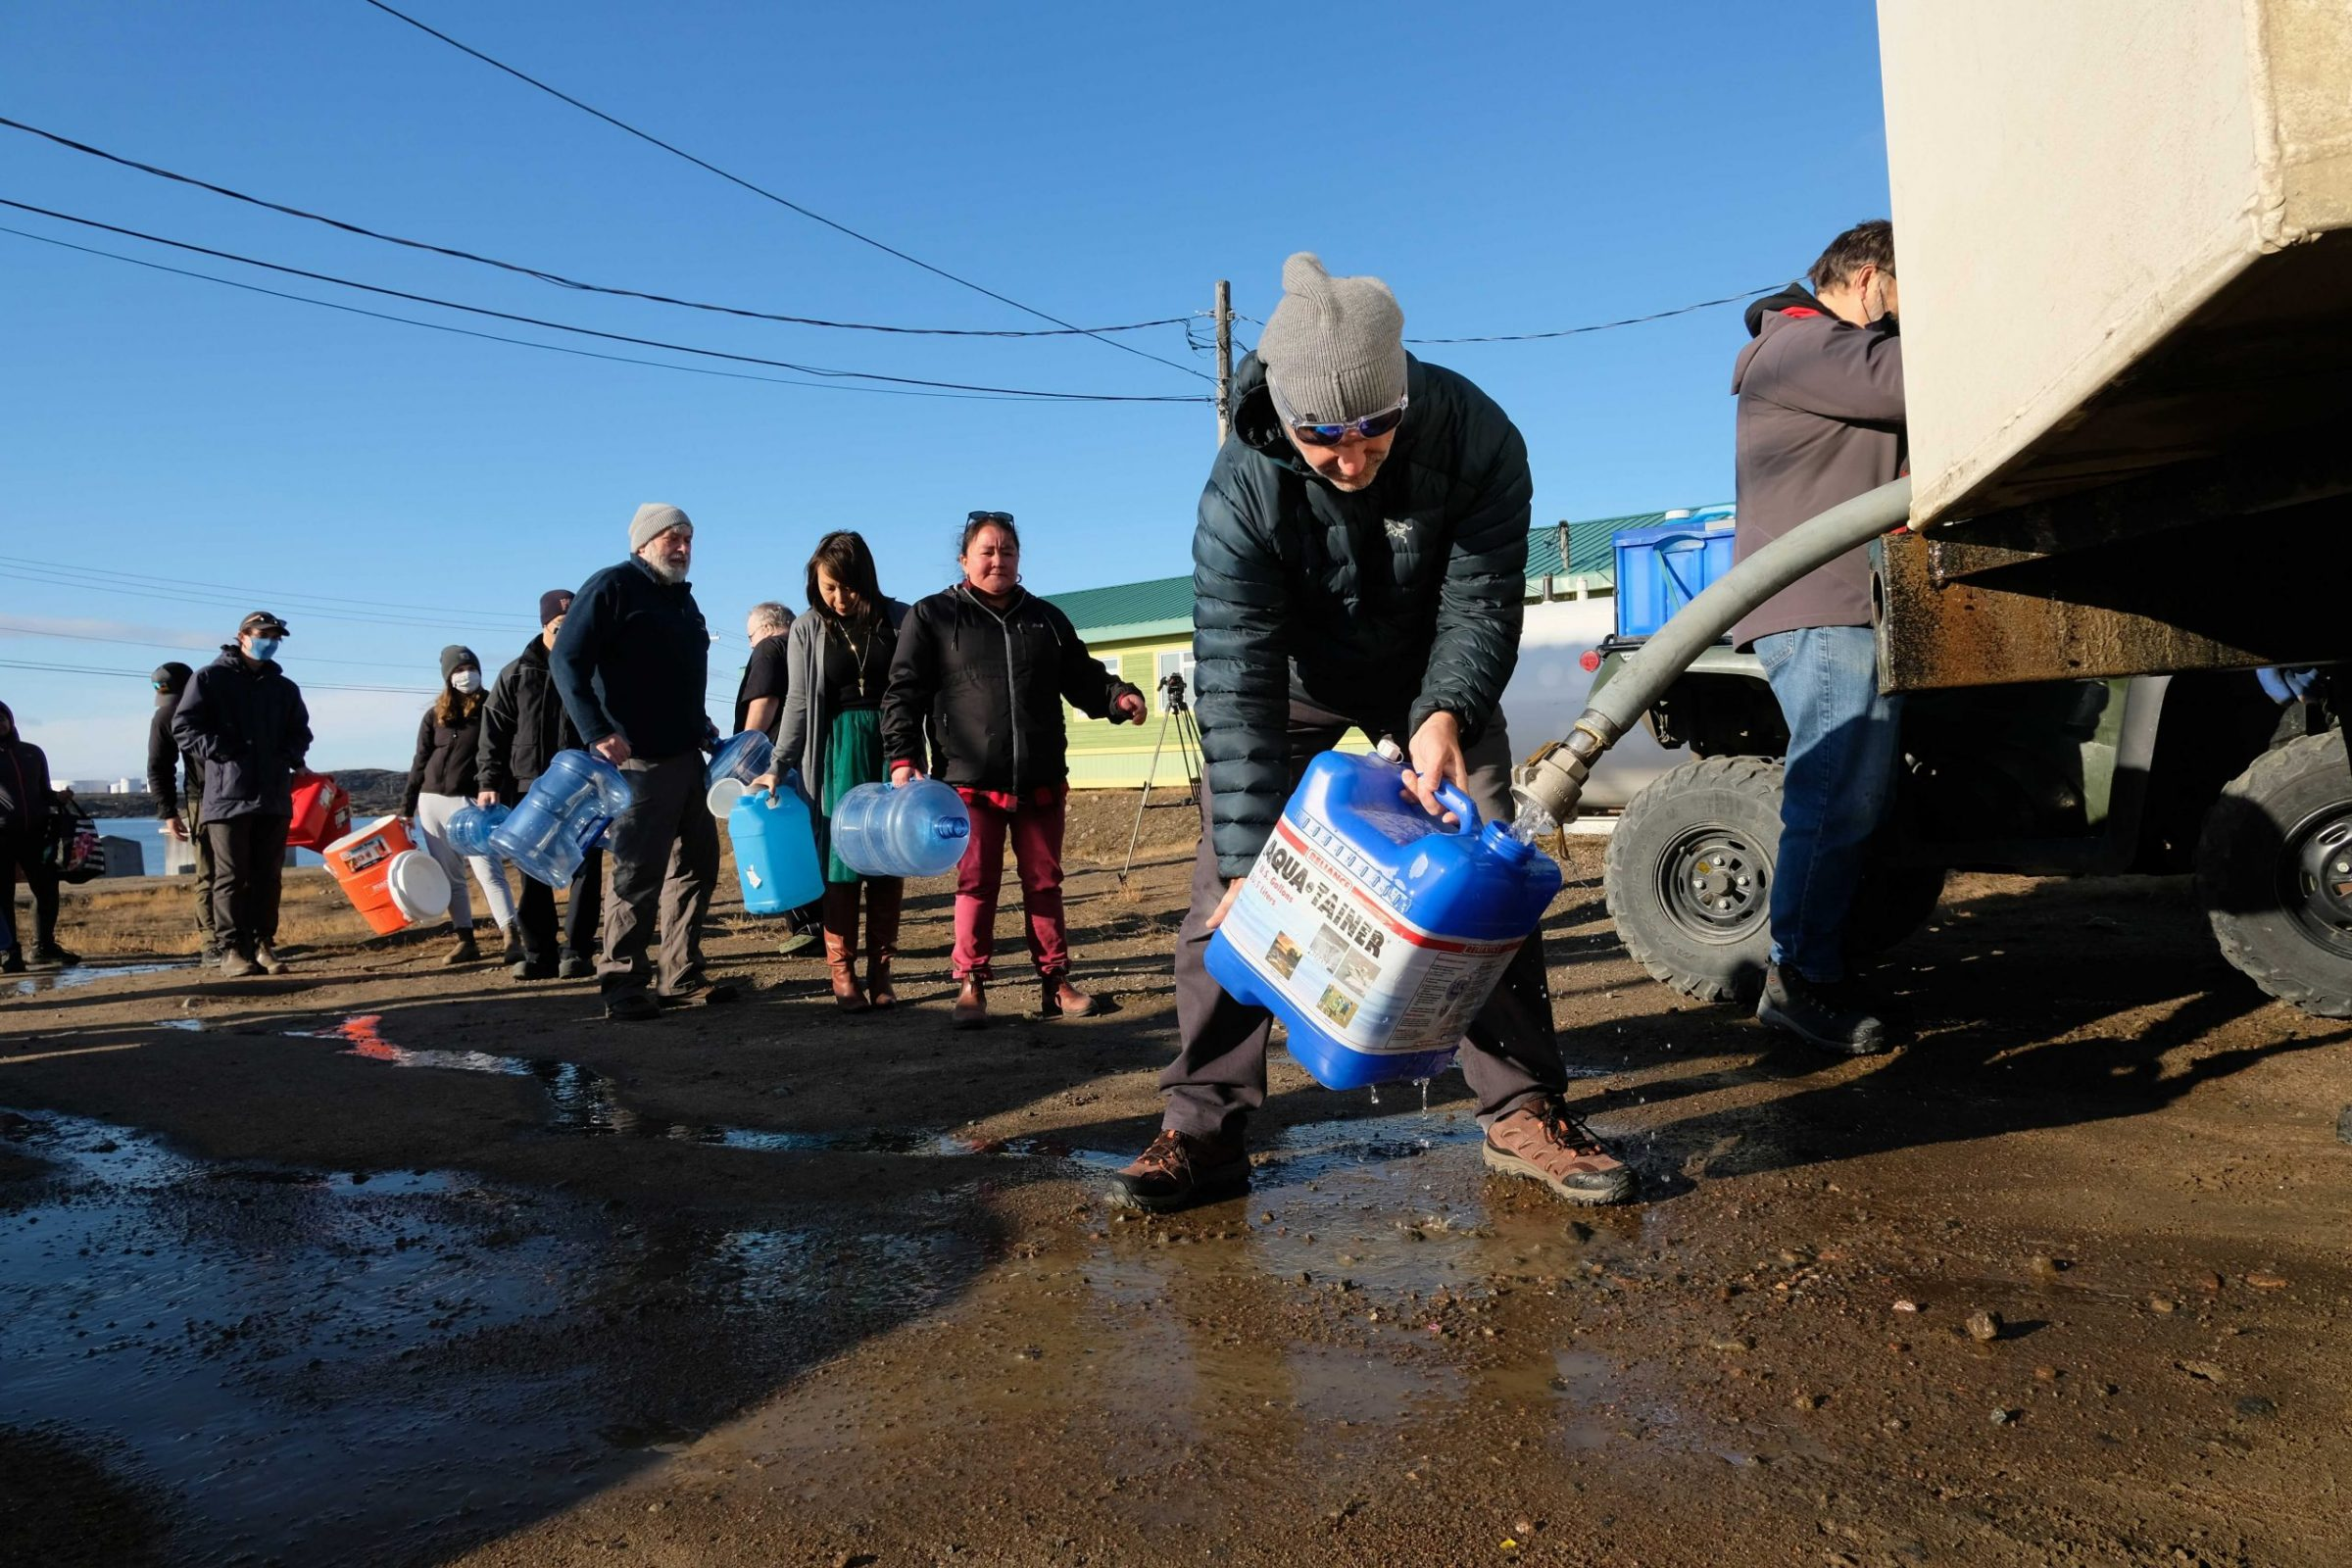 About 50 Iqaluit residents line up with water jugs at a fill station by the library around 11:30 a.m. Wednesday, following the arrival of the first water truck of the day. The water at the fill station is being pumped from a nearby river, following Tuesday's announcement that the city's tap water may be contaminated by fuel. Residents are being advised to not drink tap water, and to boil water from the river before drinking it. (Photo by Mélanie Ritchot)